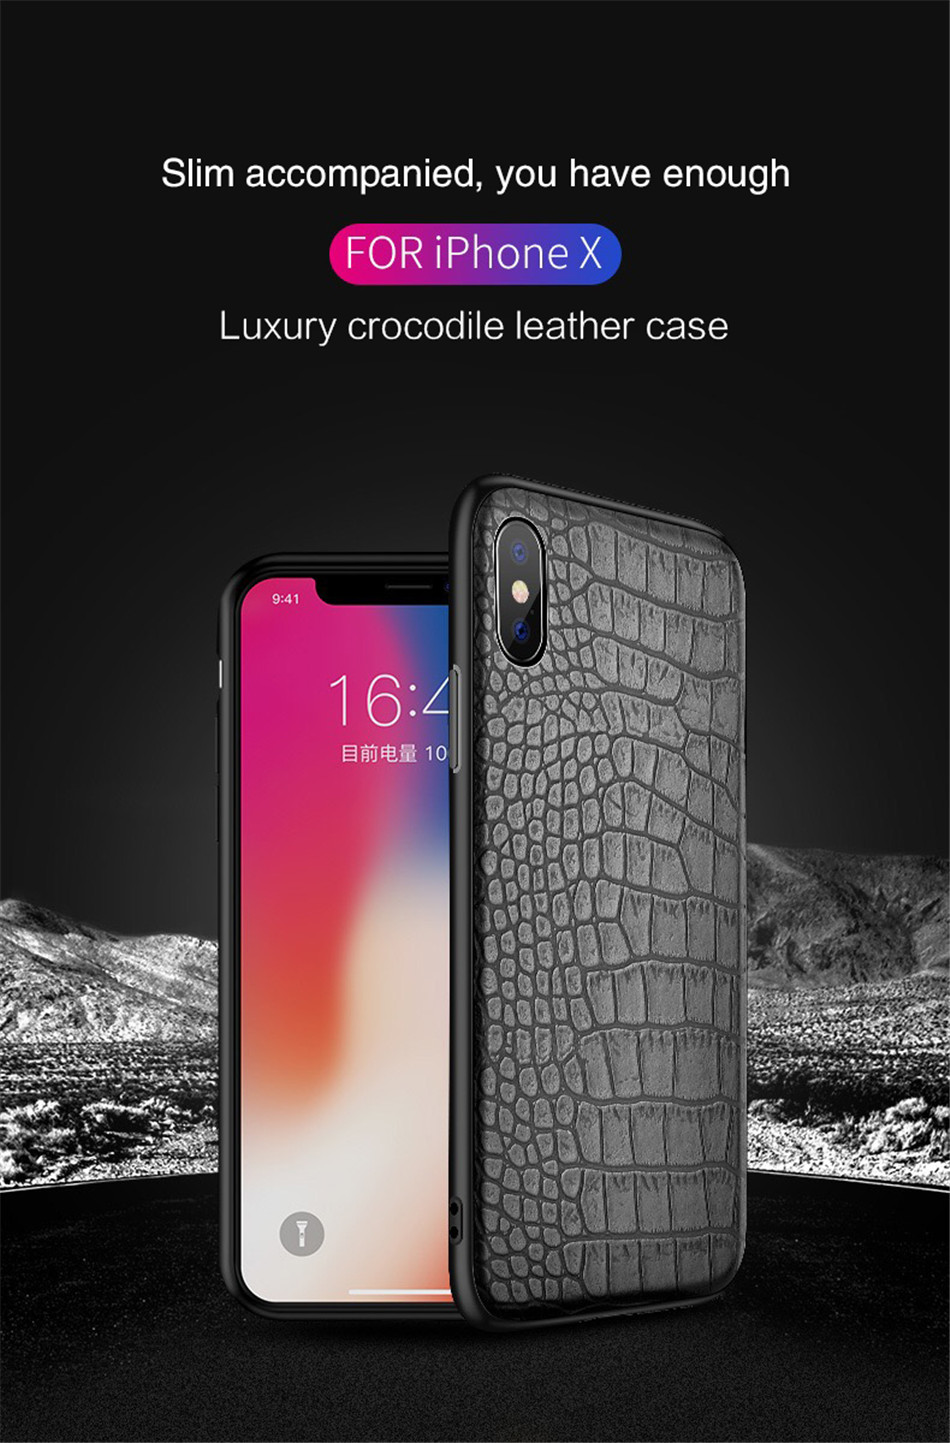 Retro Vintage Phone Bag Case For Iphone X 6 6s 7 7s 8 Plus Crocodile Snake Skin Pattern Soft Protective Cover Shell For iphoneX (1)